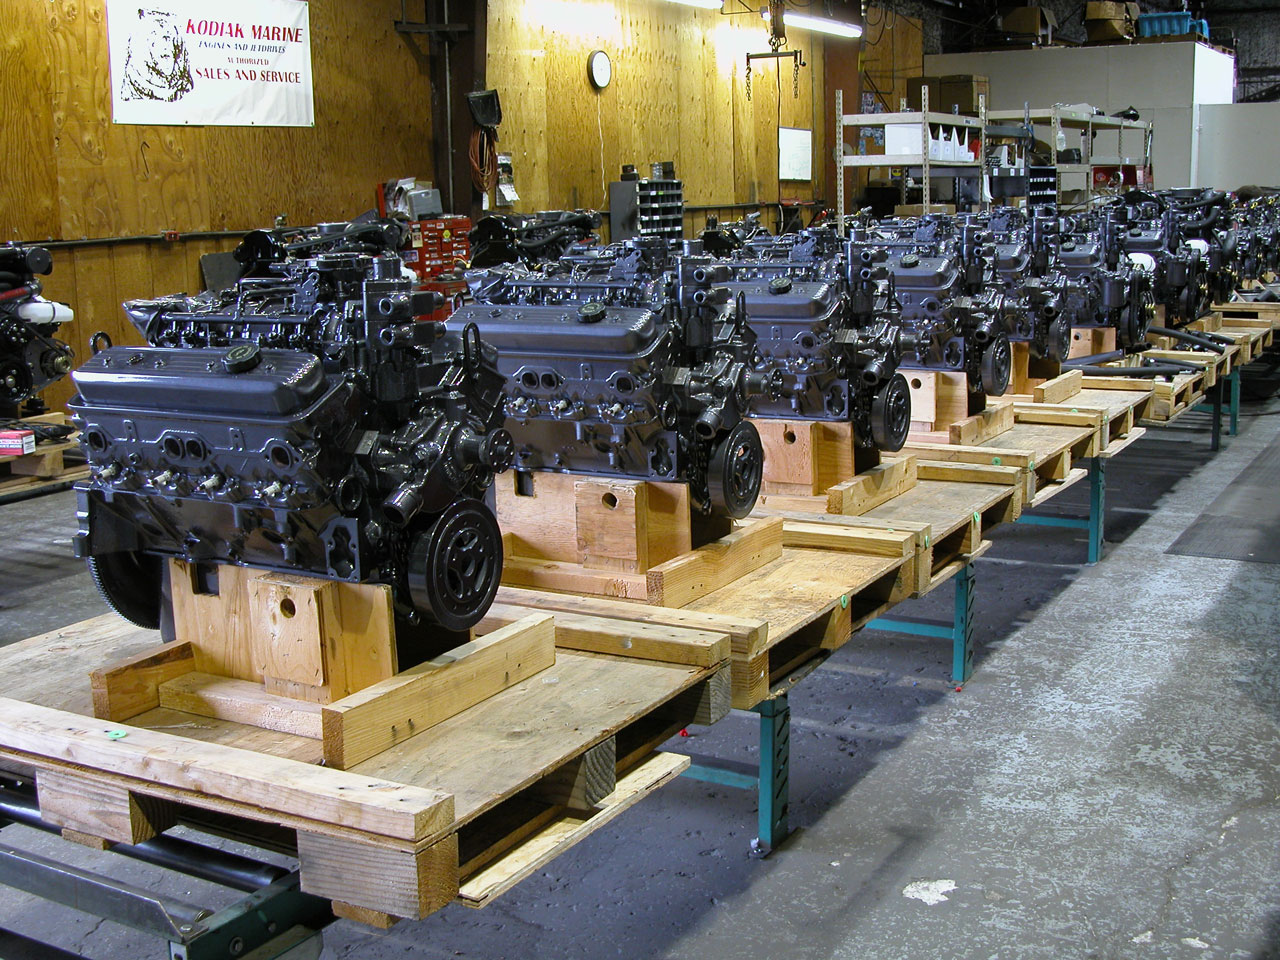 hight resolution of kodiak marine engine production line